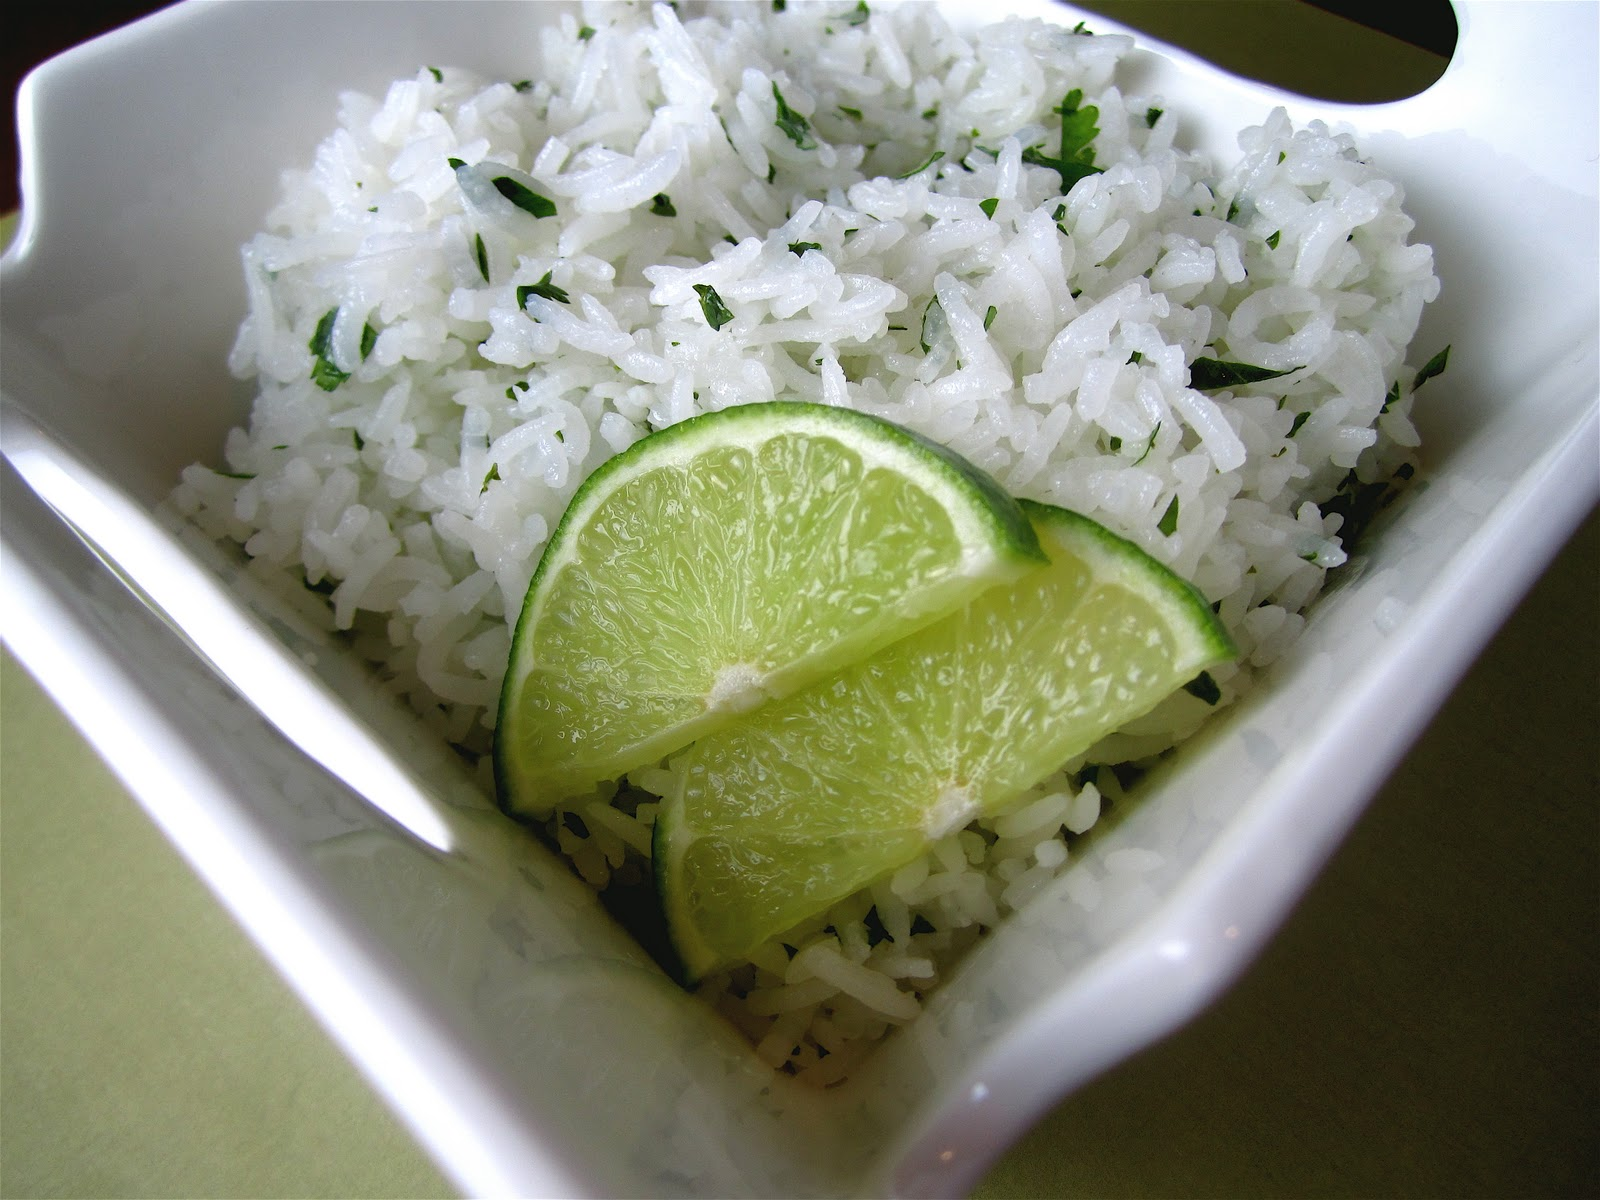 Stephanie Cooks: Chipotle's Cilantro Lime Rice